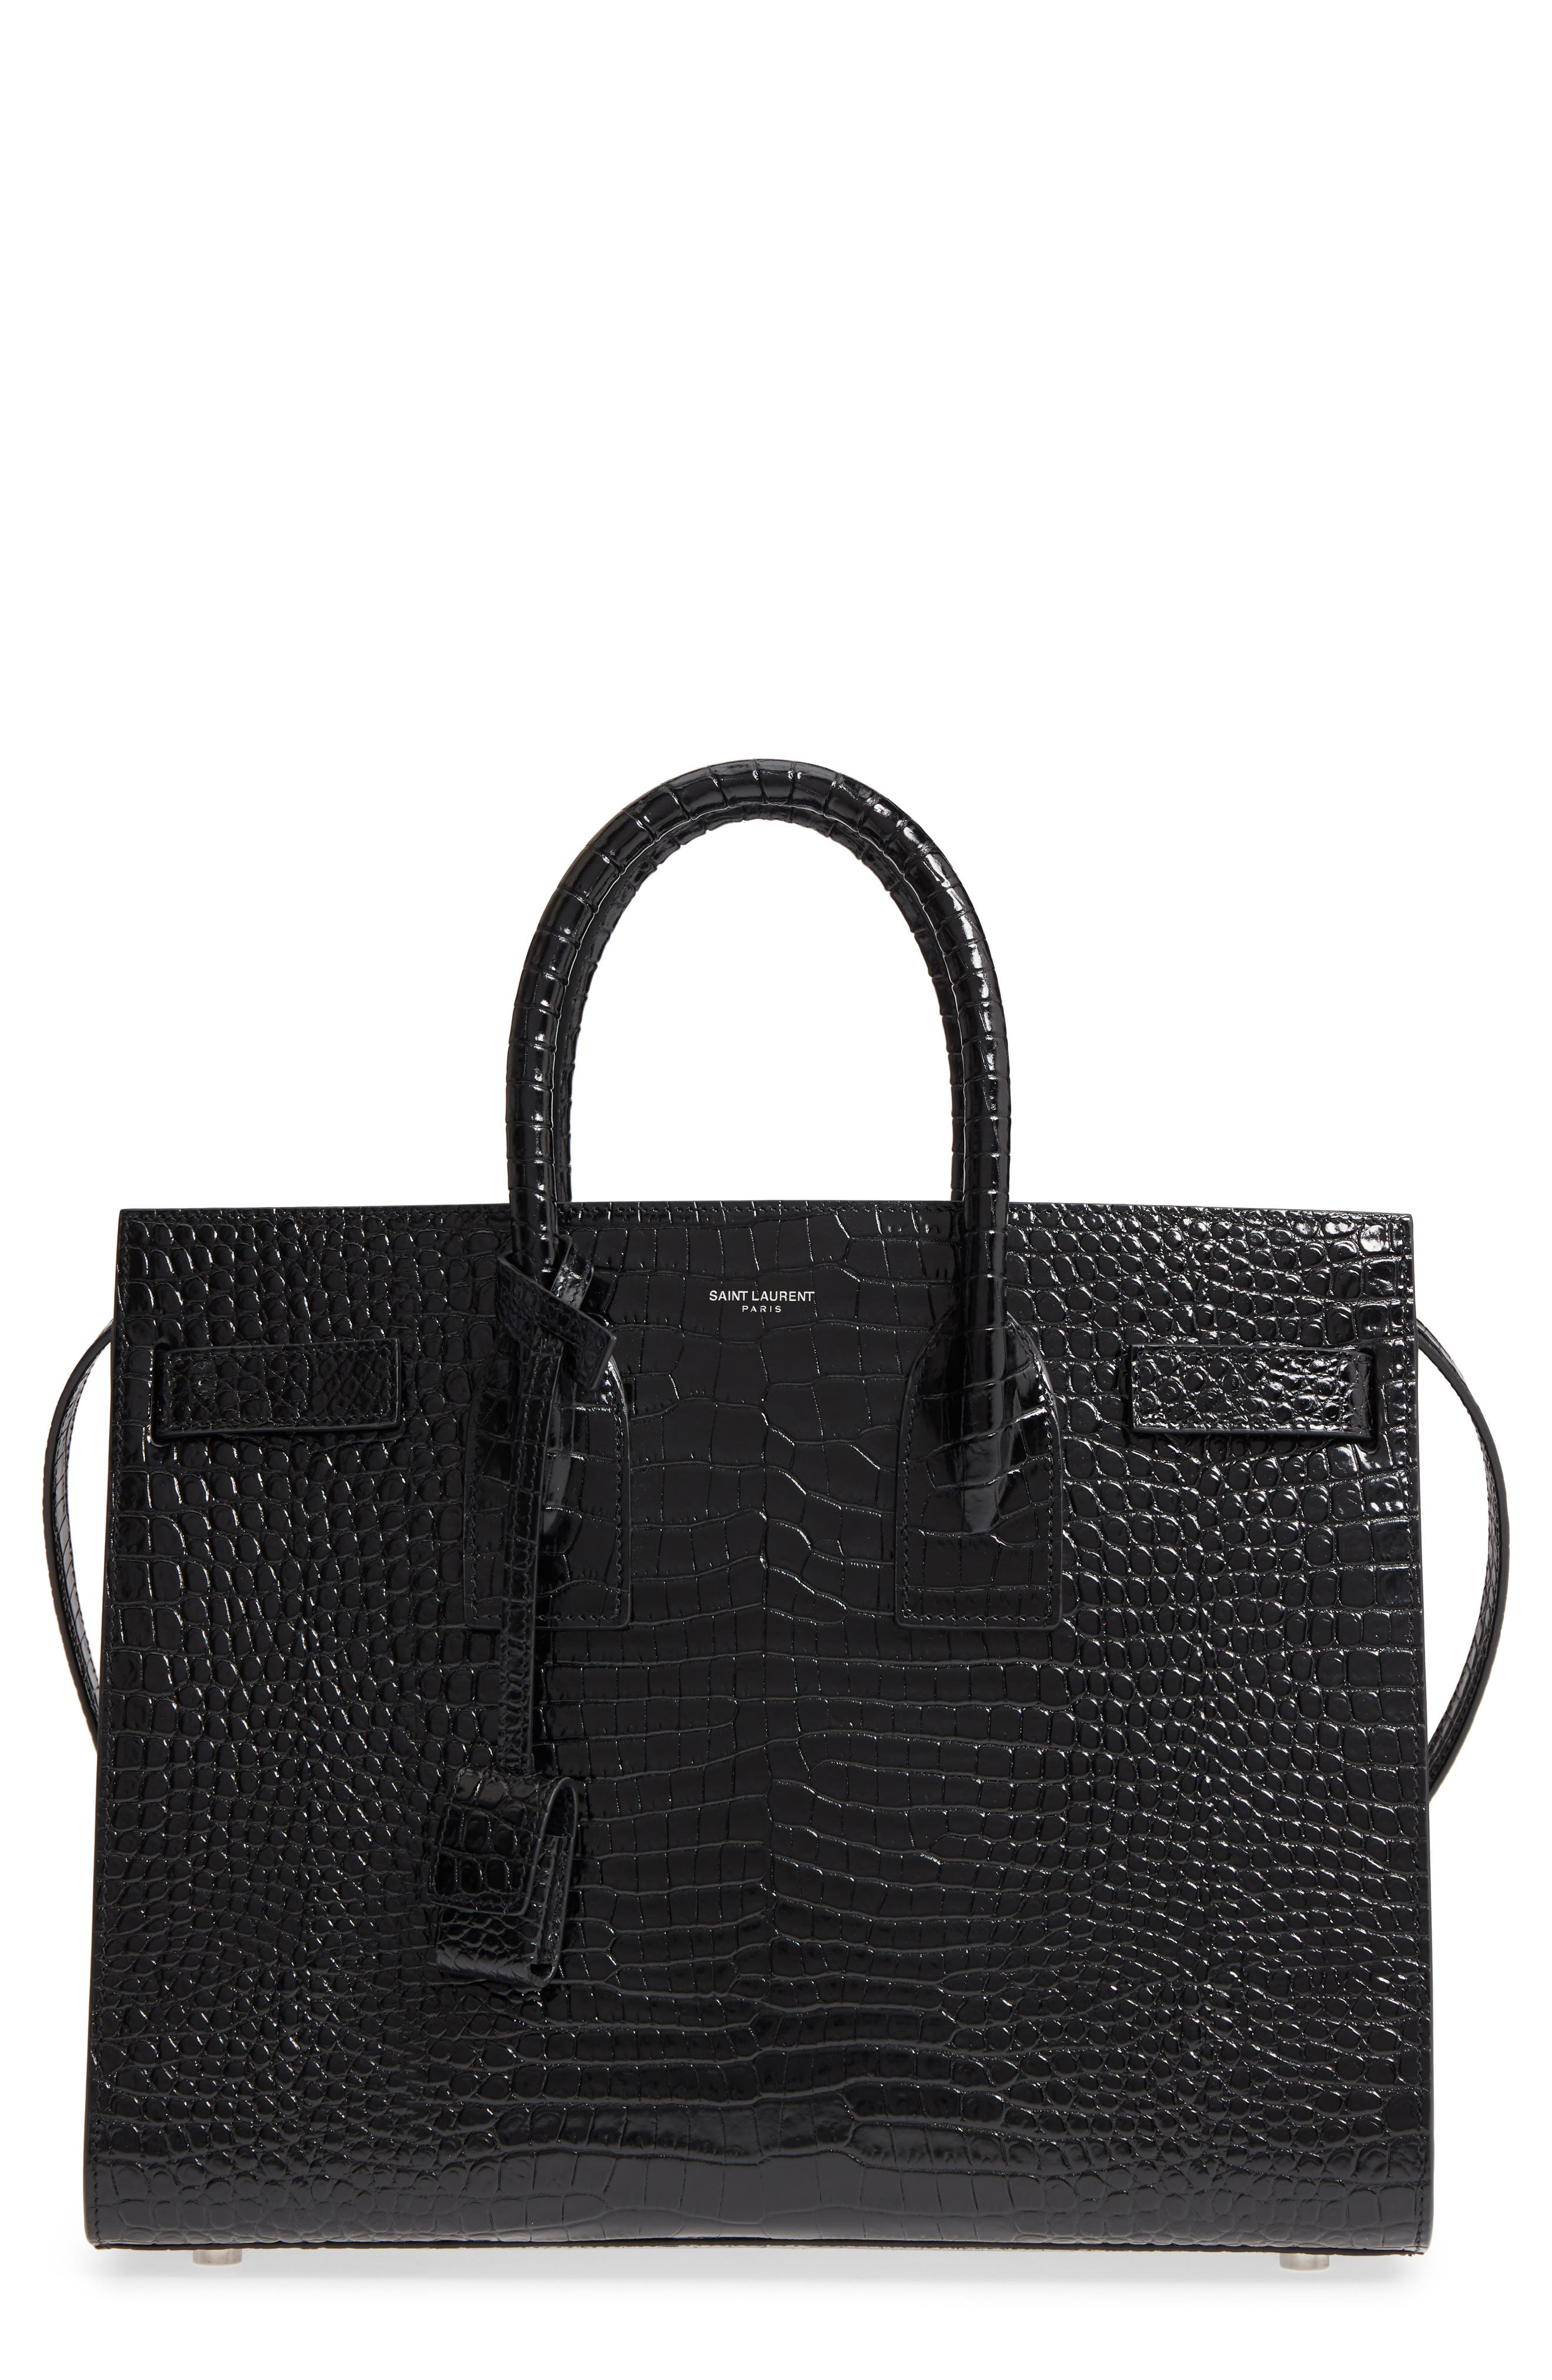 Small Sac de Jour Croc Embossed Calfskin Leather Tote,                         Main,                         color, NERO/ NERO